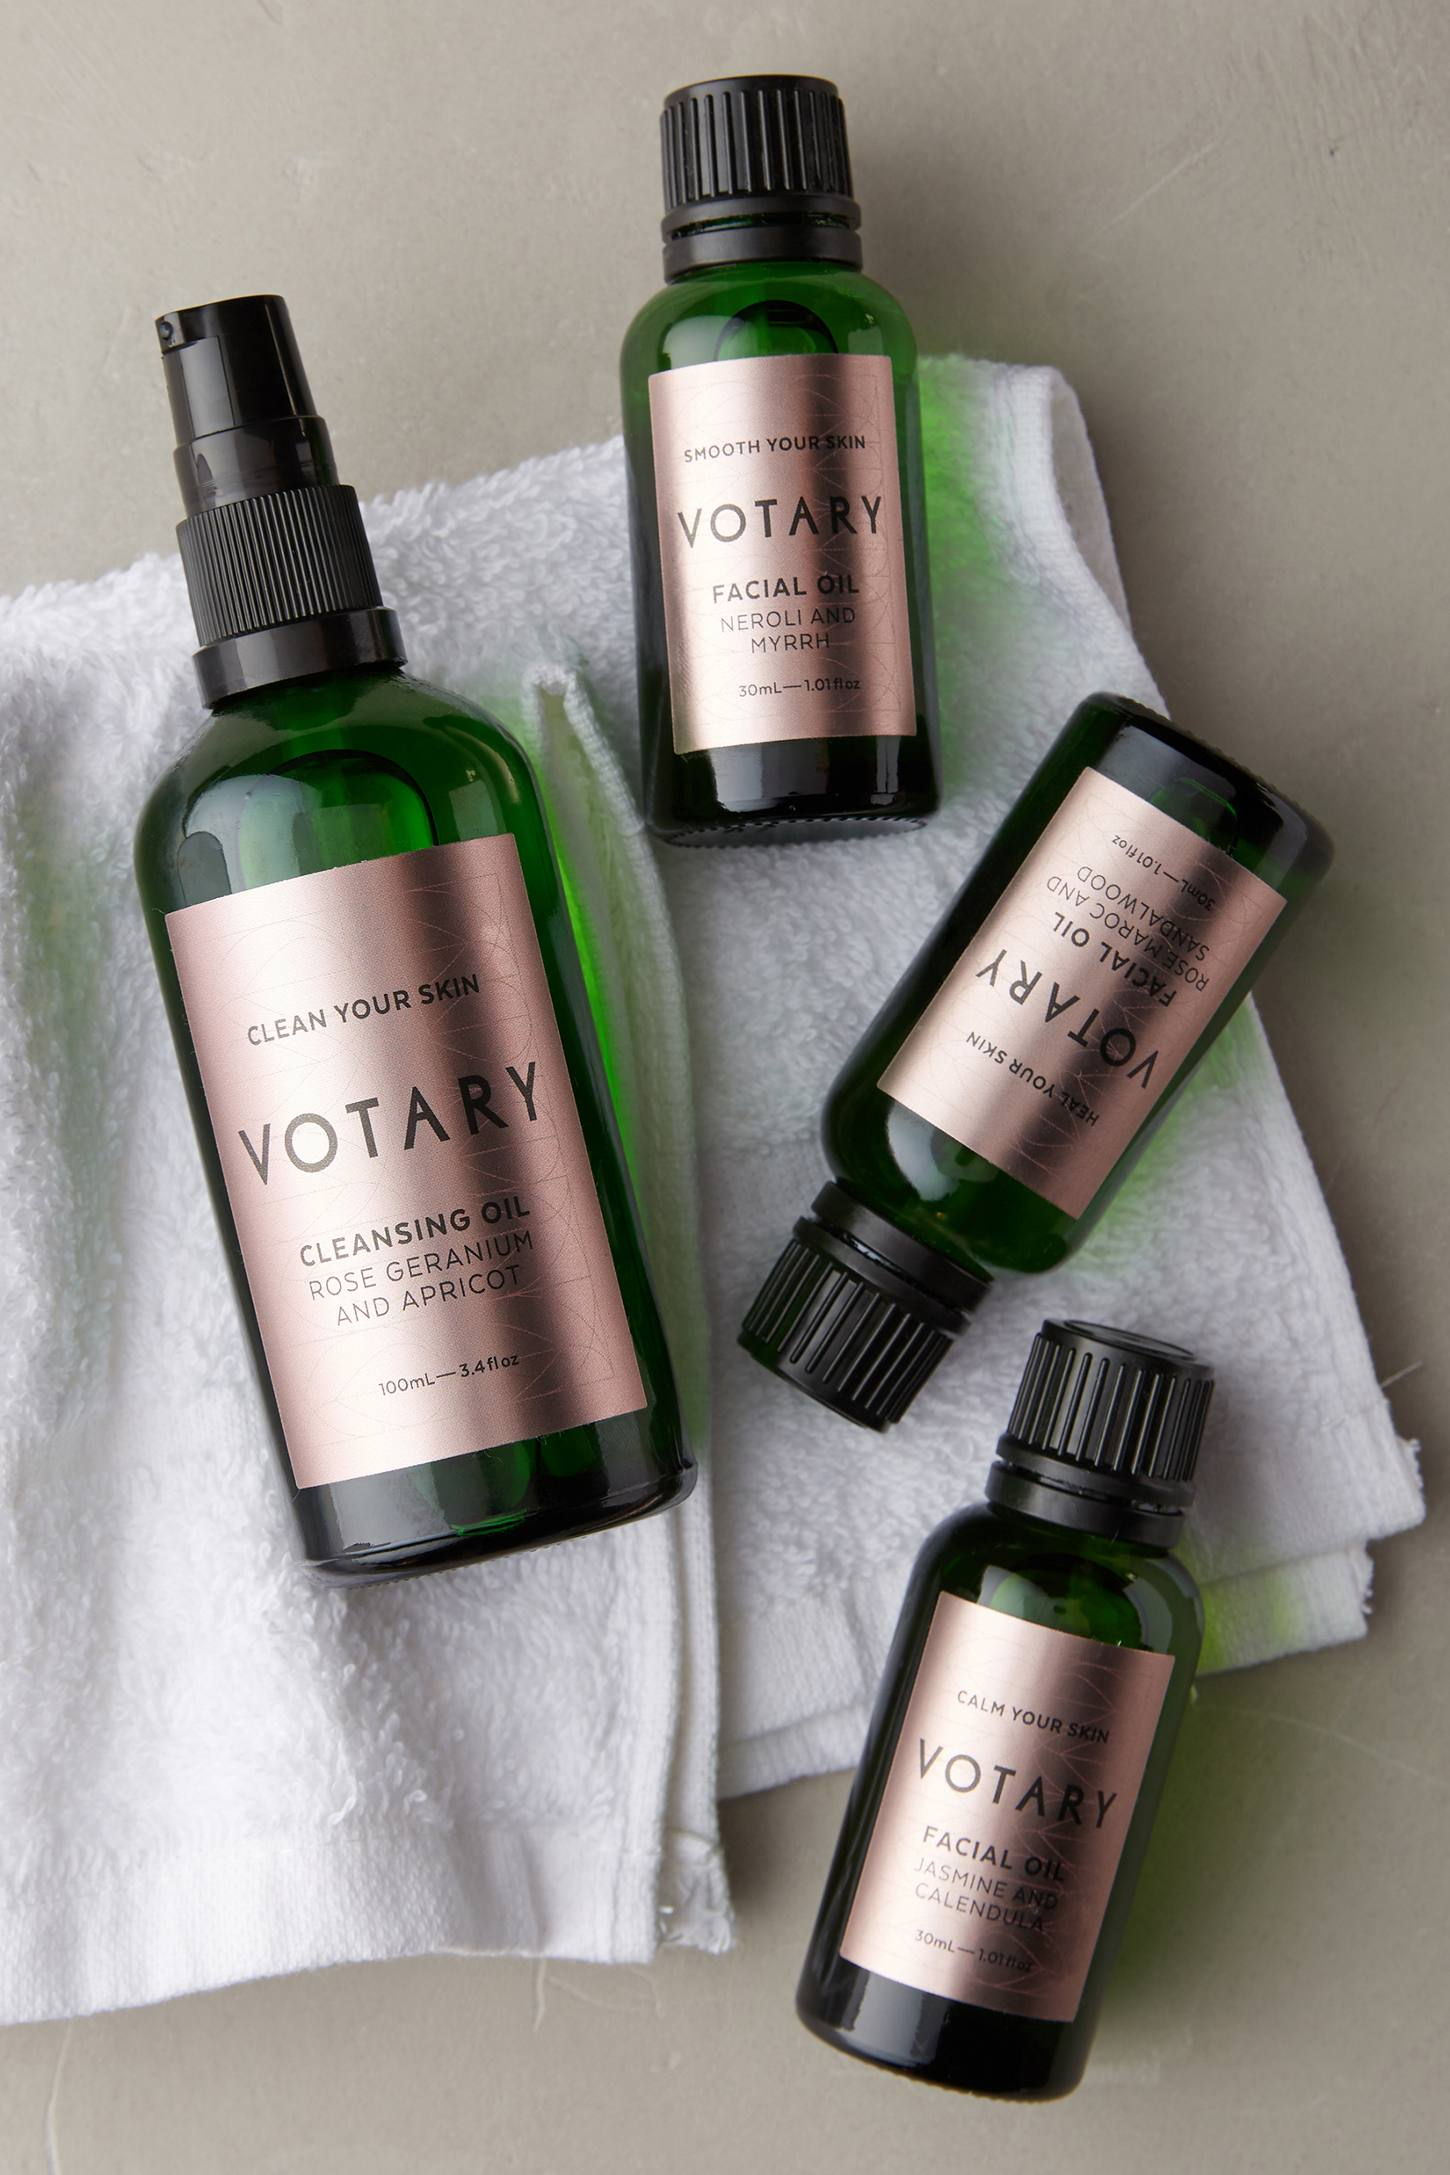 Slide View: 2: Votary Cleansing Oil